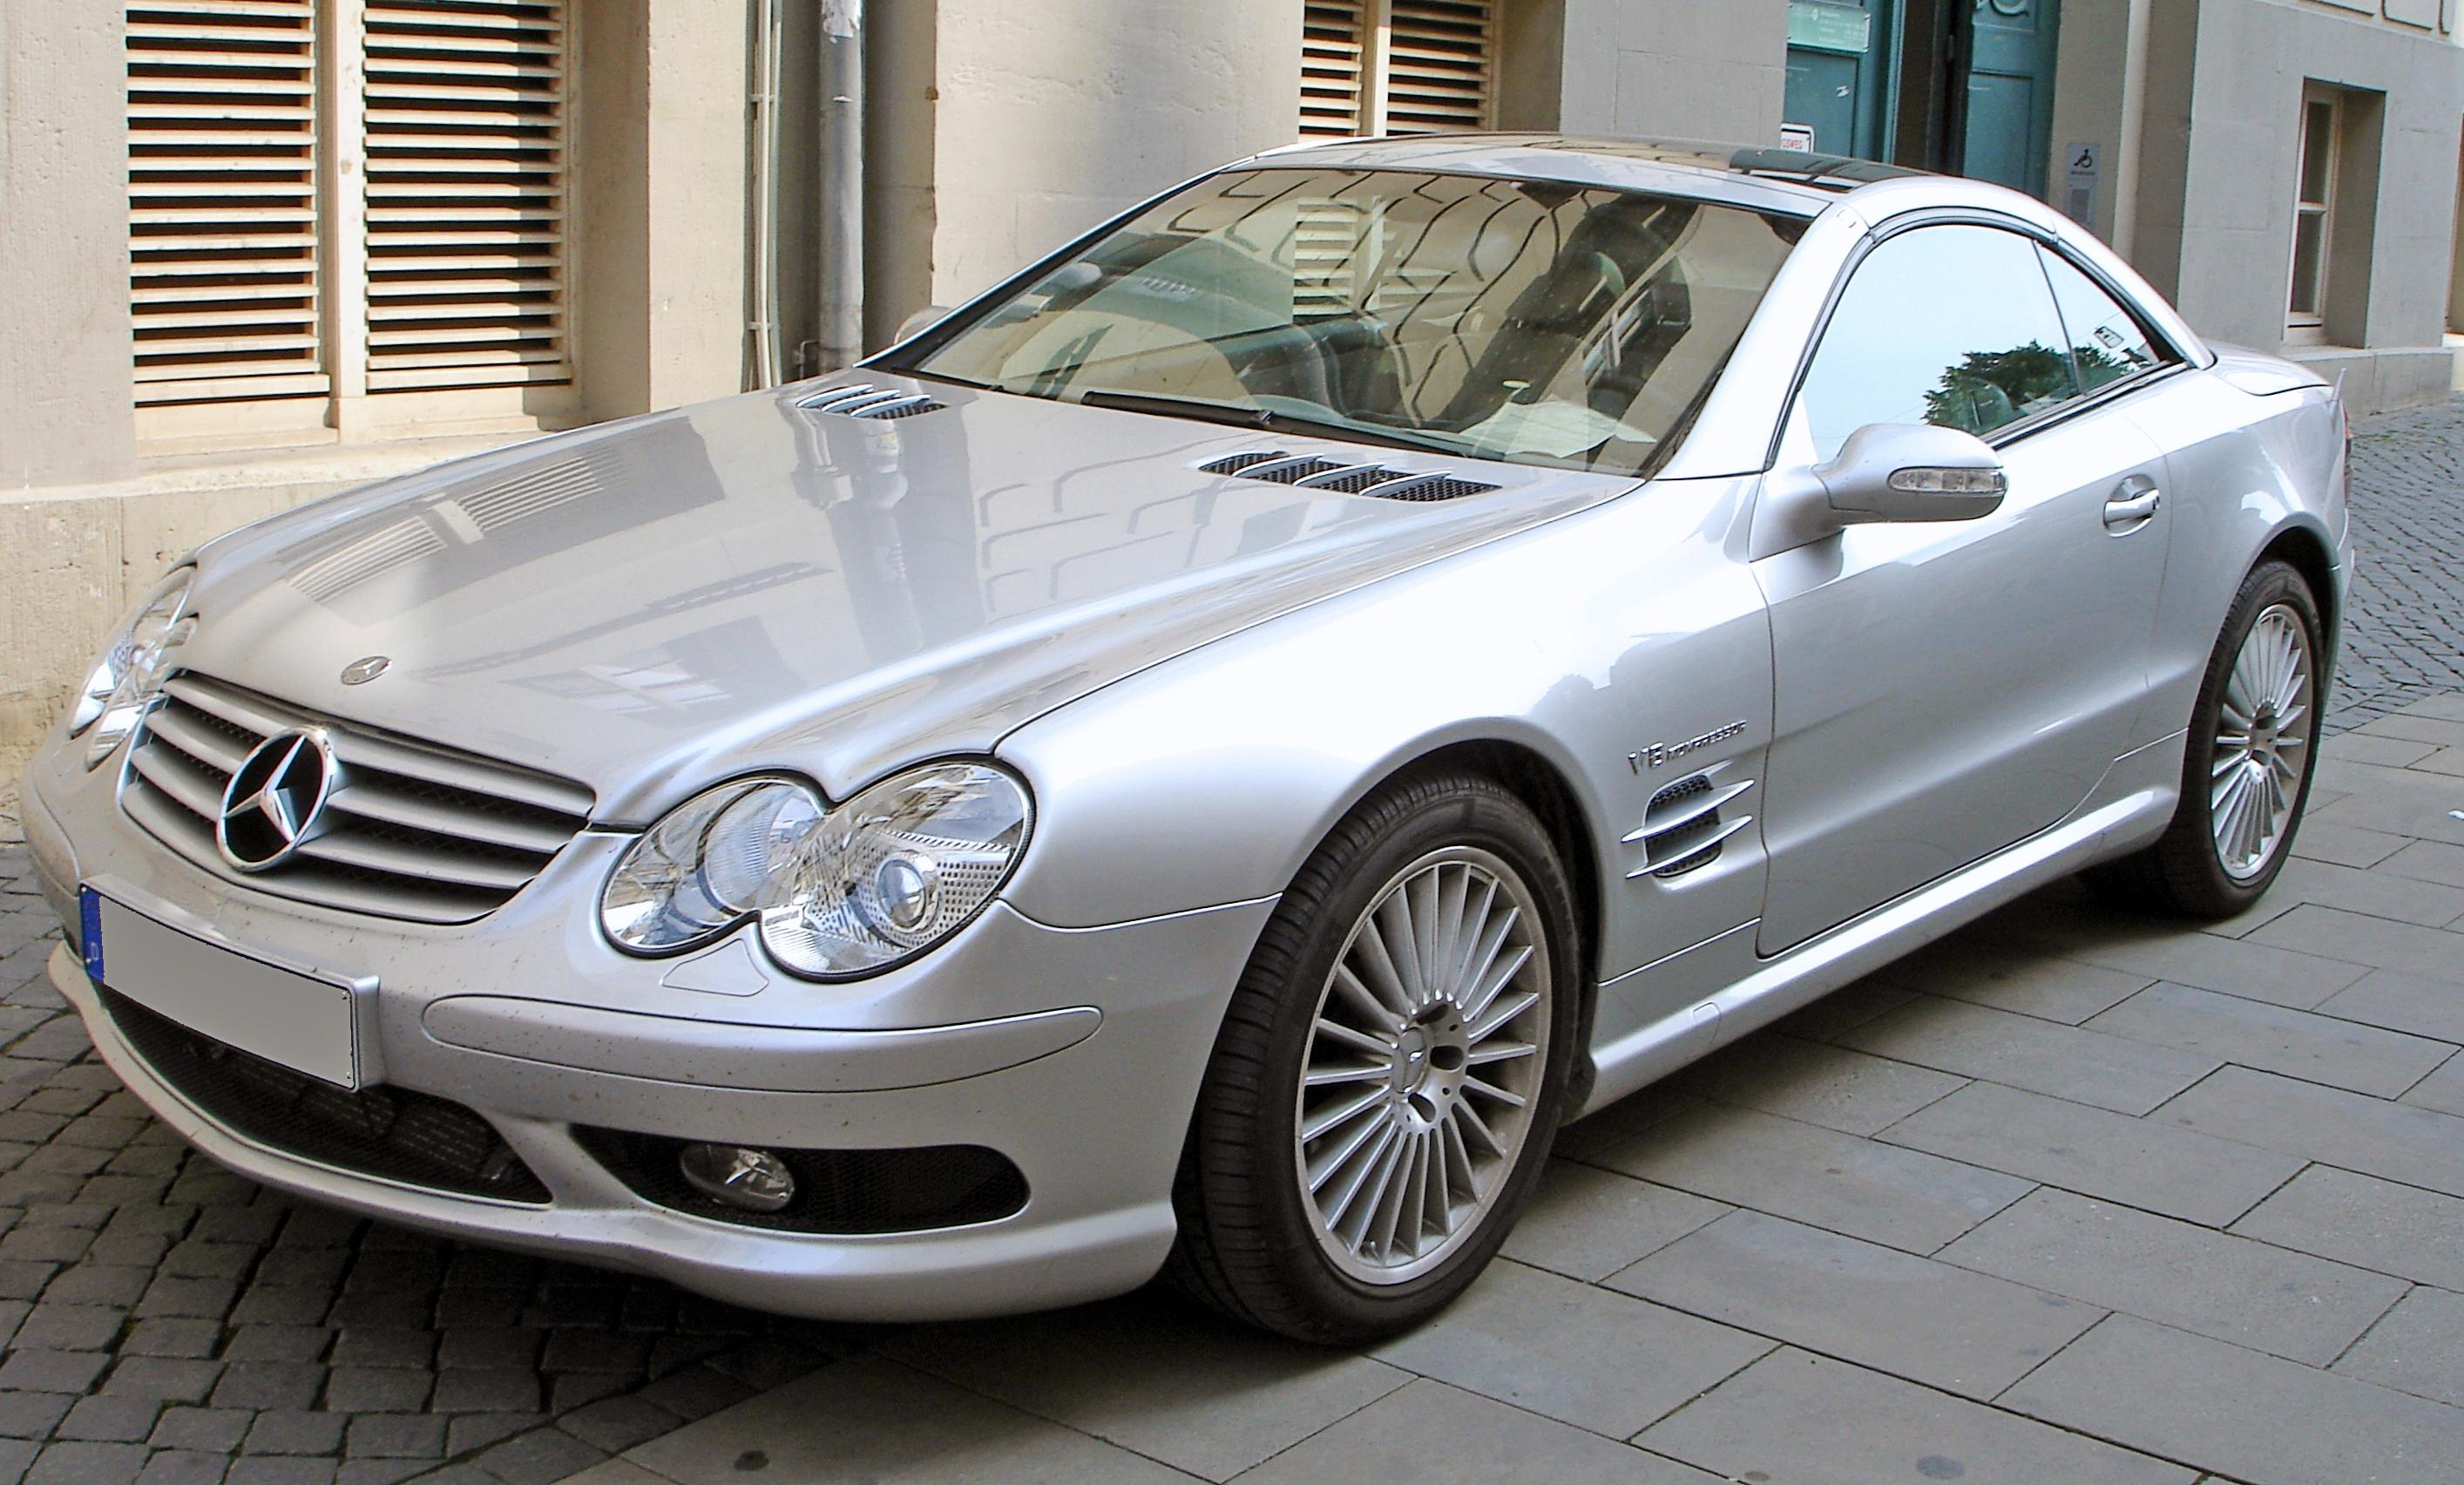 file mercedes sl 55 amg wikimedia commons. Black Bedroom Furniture Sets. Home Design Ideas